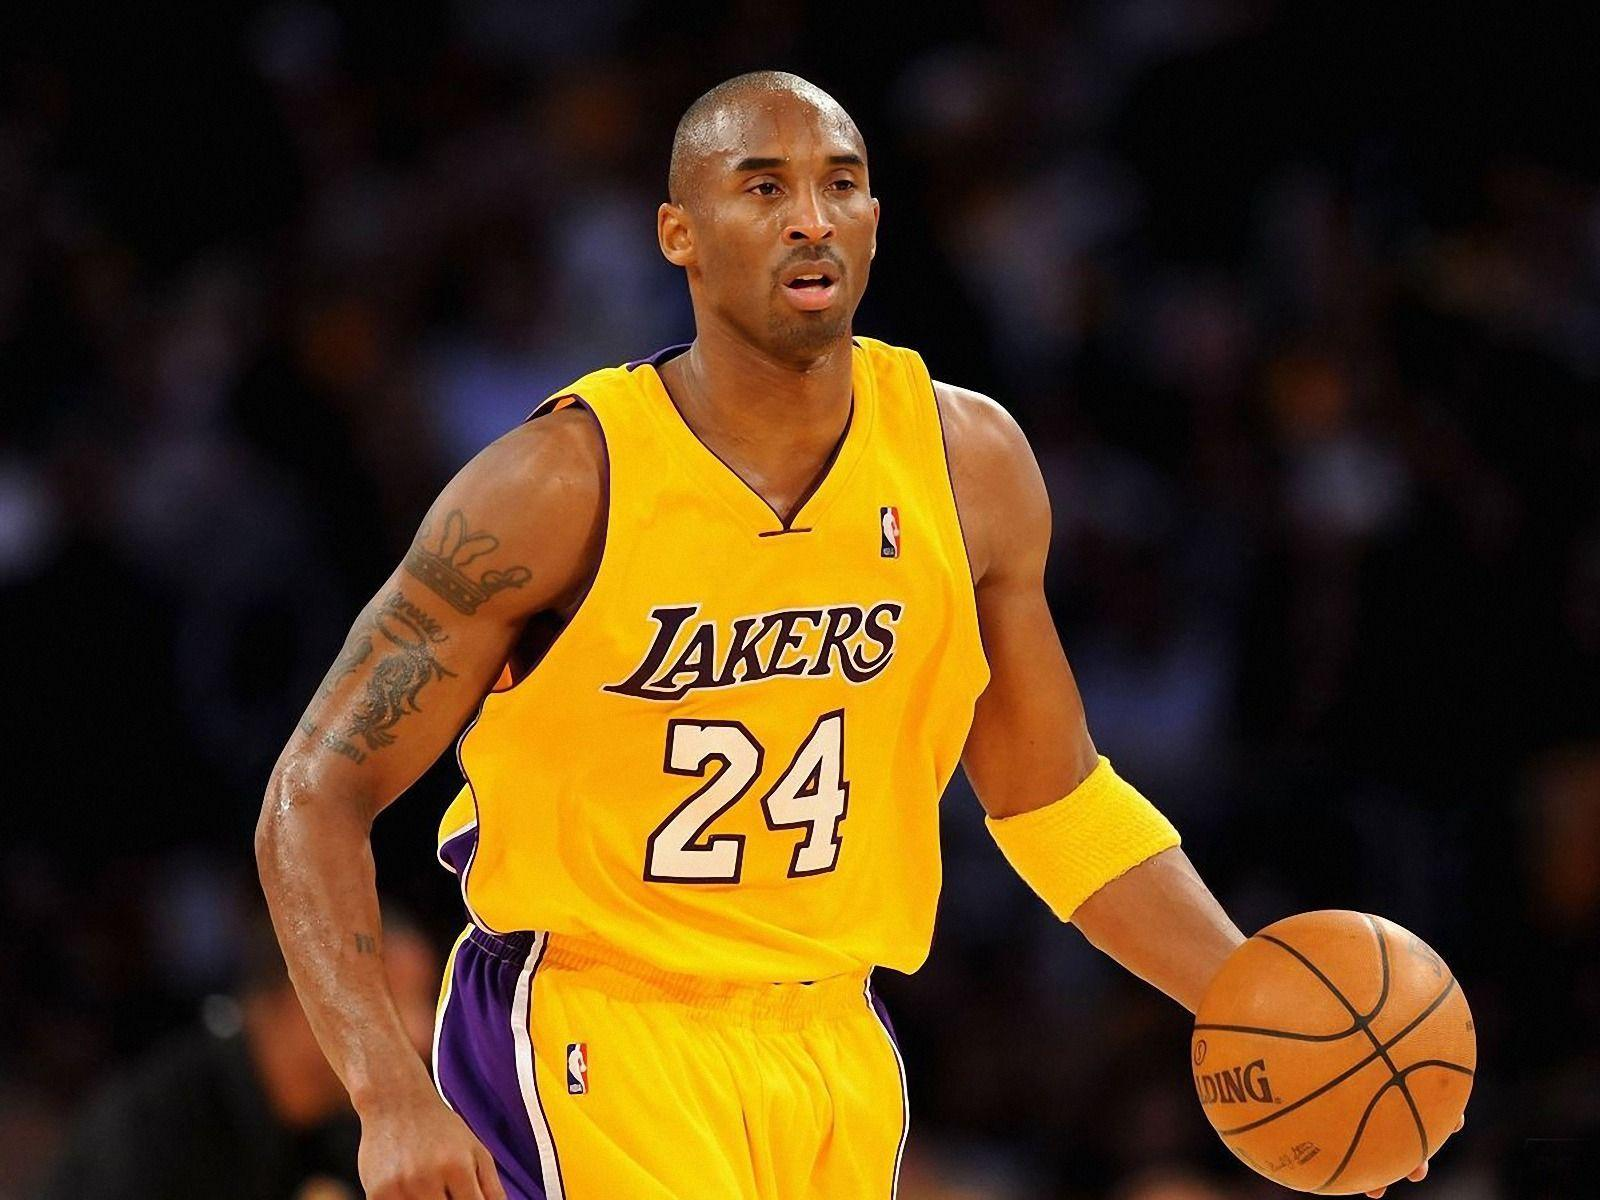 Los Angeles Lakers News: Team Could See Very Different Kobe Bryant